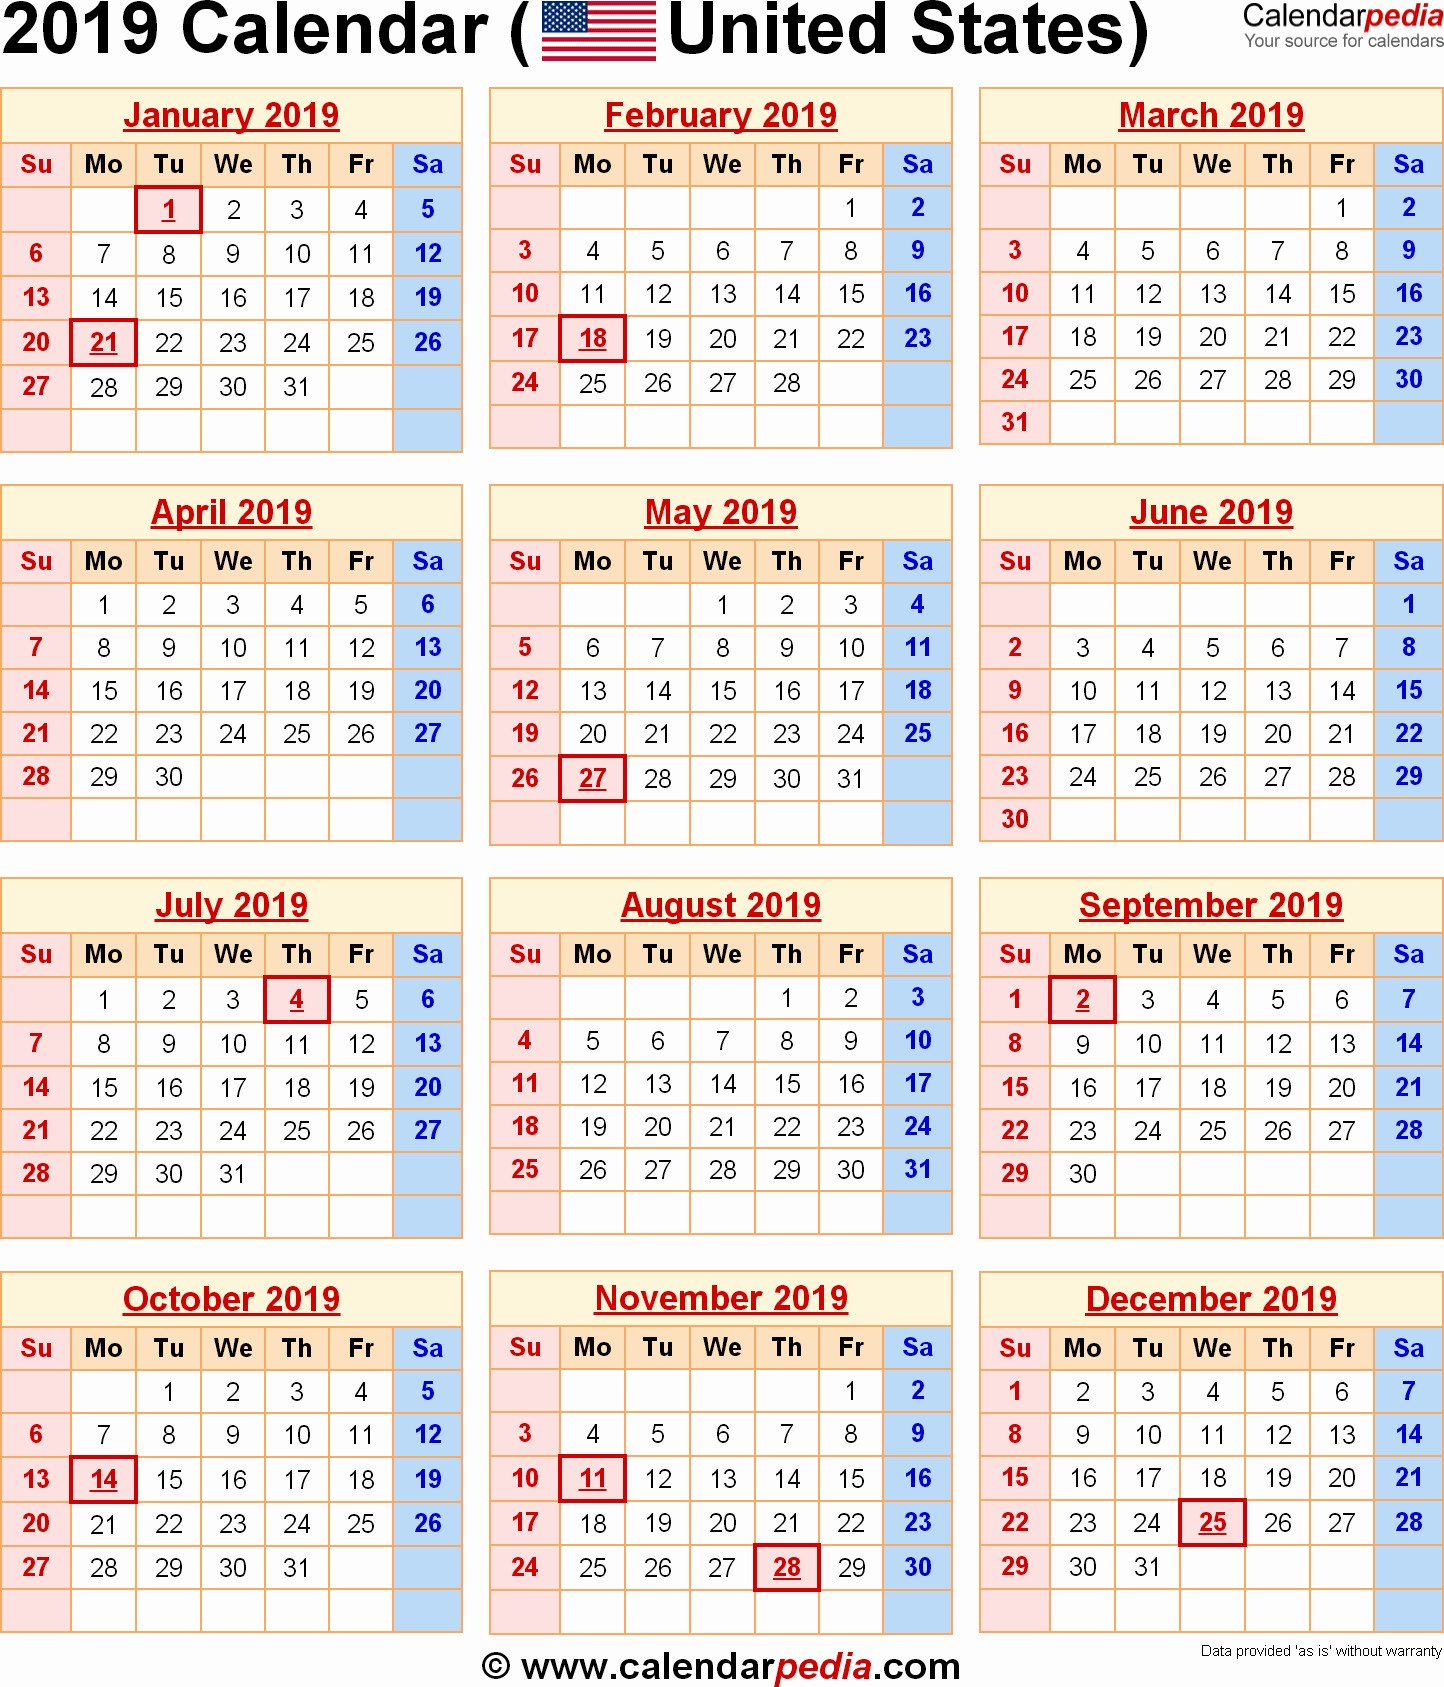 March Holiday Calendar 2019 Mejores Y Más Novedosos Post Fice Holiday Schedule 2018 March 2019 Calendar with Holidays Of March Holiday Calendar 2019 Mejores Y Más Novedosos March 2019 Calendar Printable with Holidays